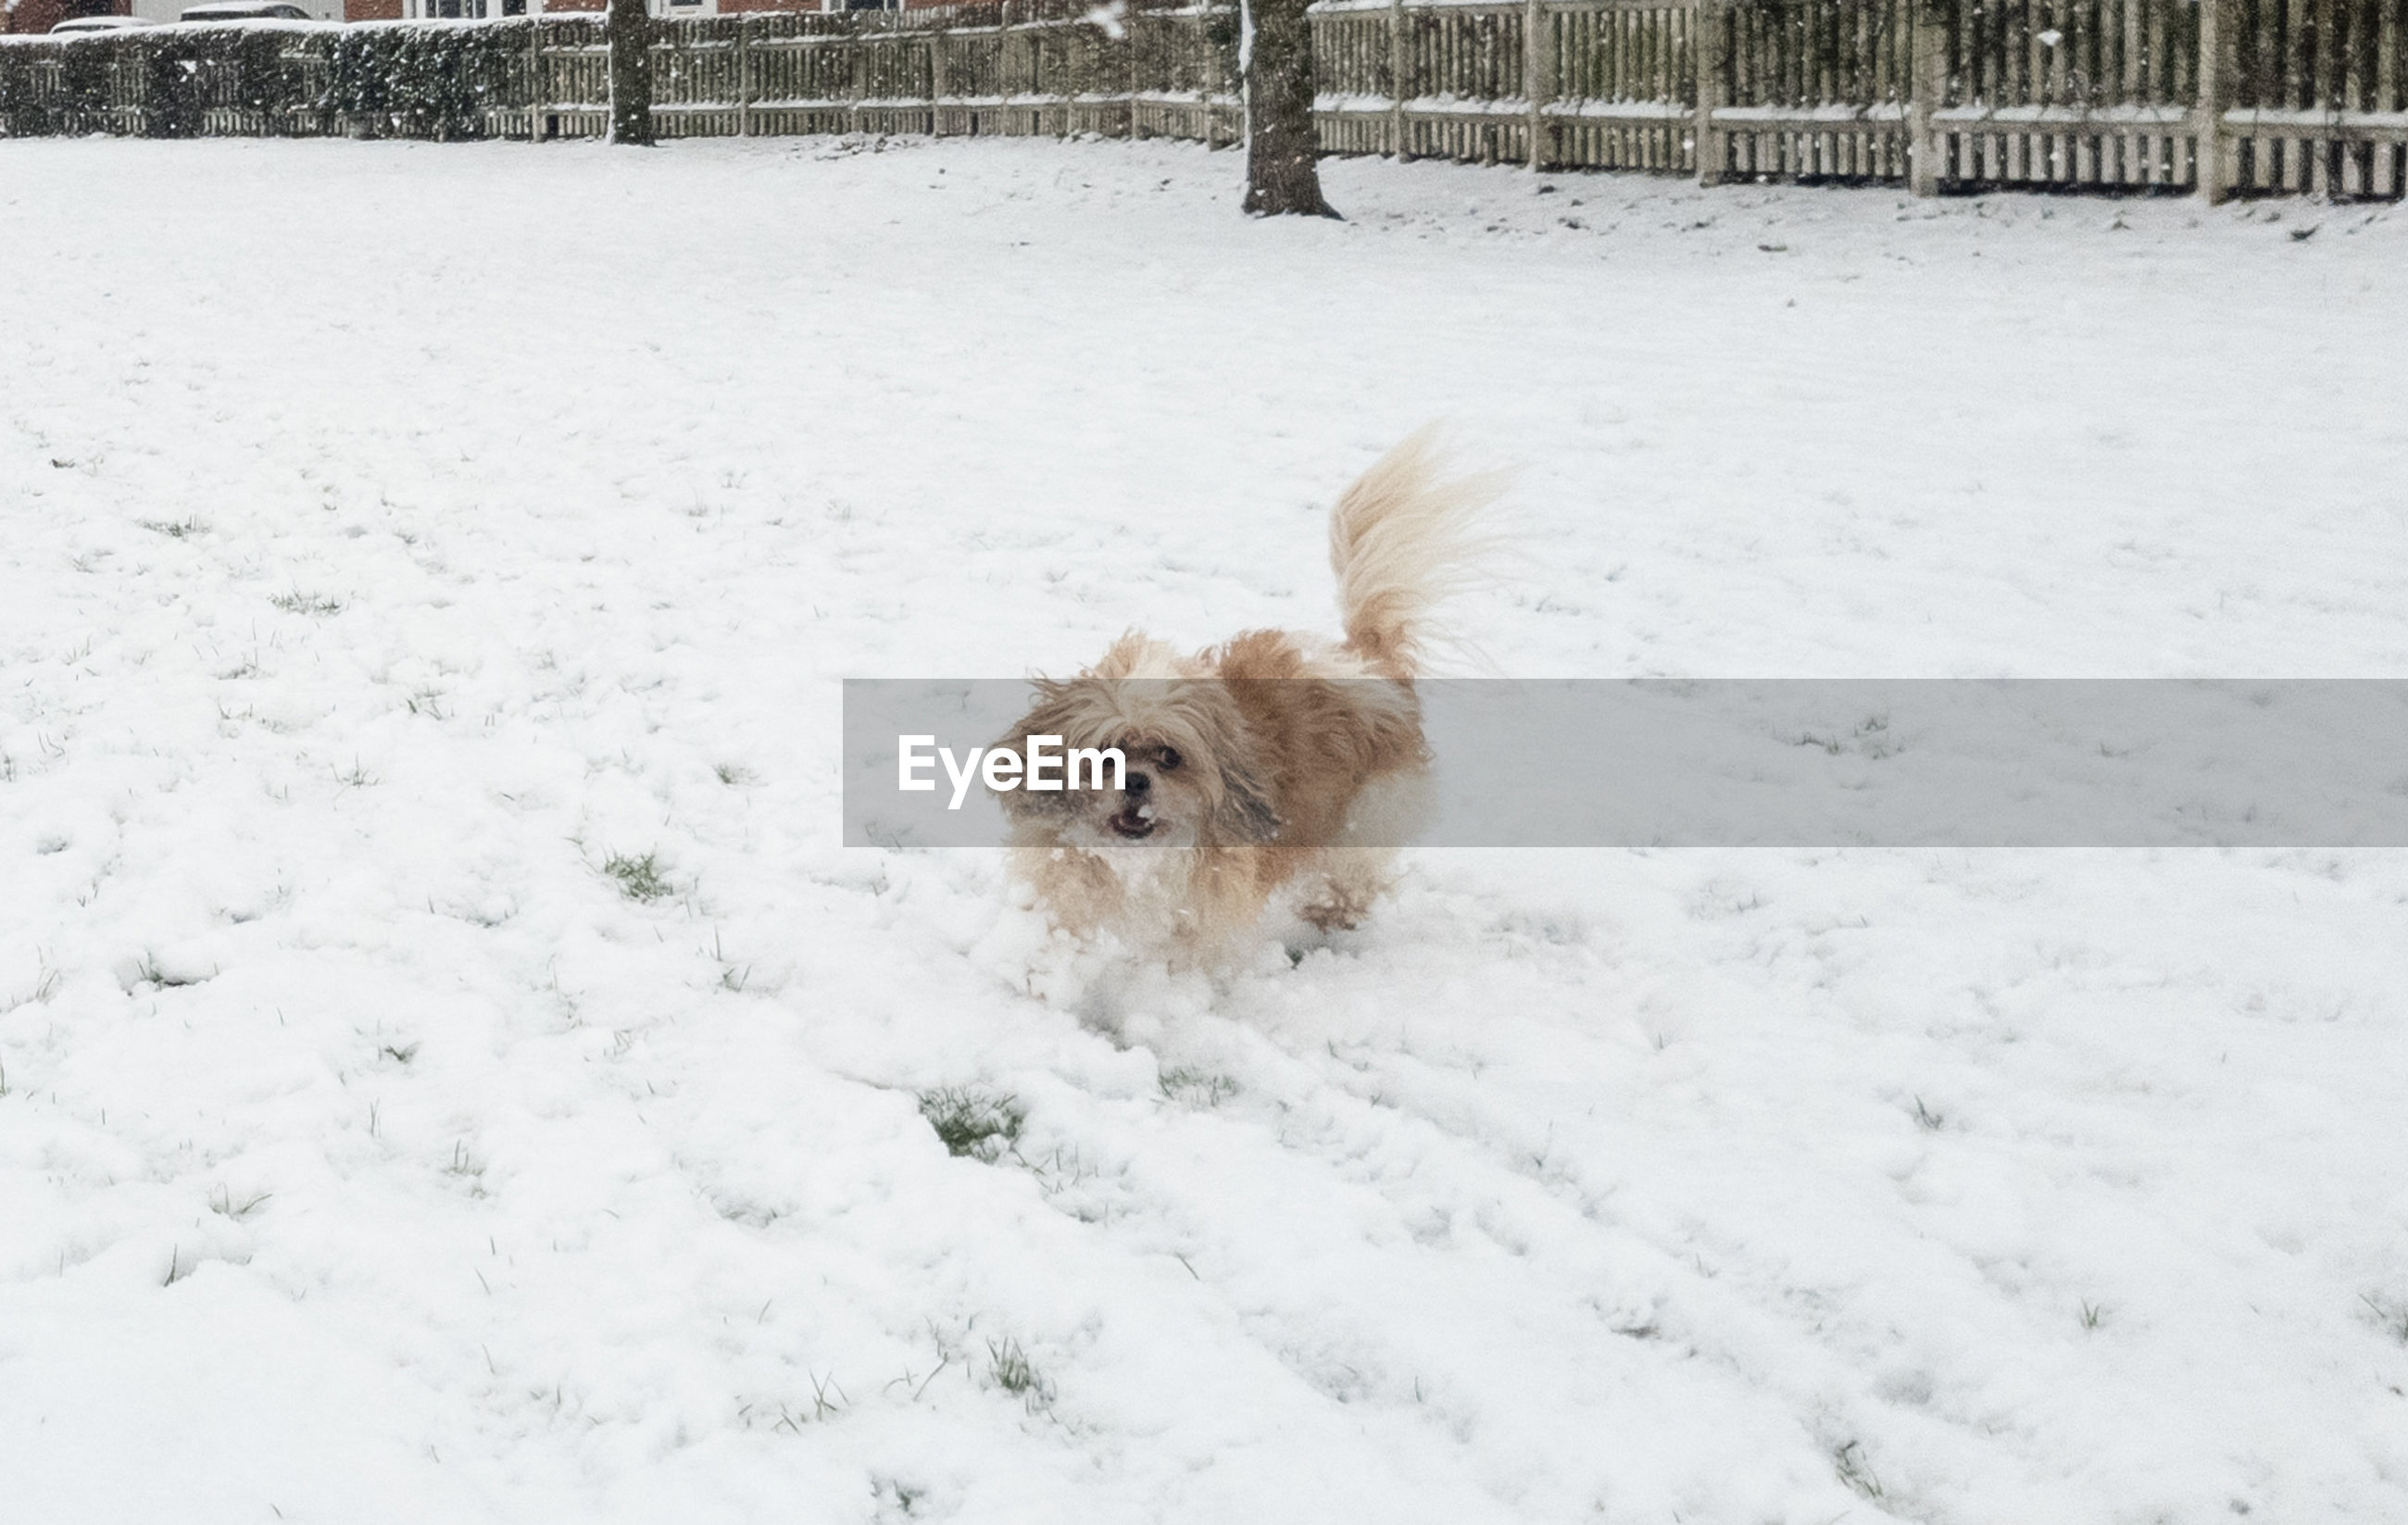 snow, canine, dog, one animal, cold temperature, winter, pets, domestic, domestic animals, mammal, animal themes, animal, white color, vertebrate, field, nature, covering, no people, land, outdoors, snowing